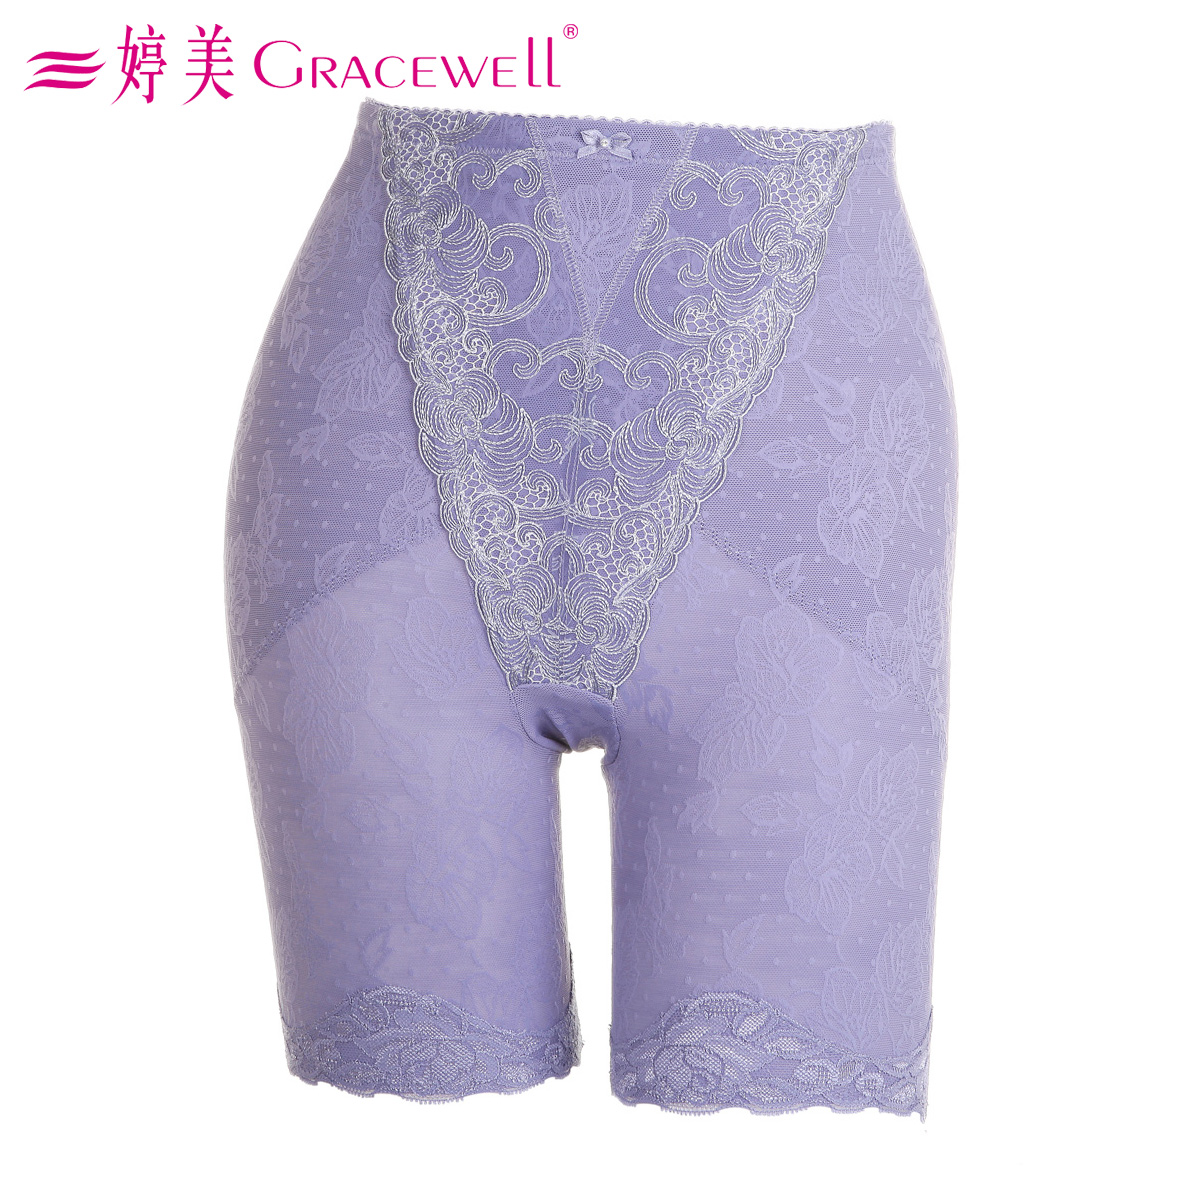 Hot-selling adjustable abdomen drawing butt-lifting body shaping pants breathable puerperal beauty care panties tc0940